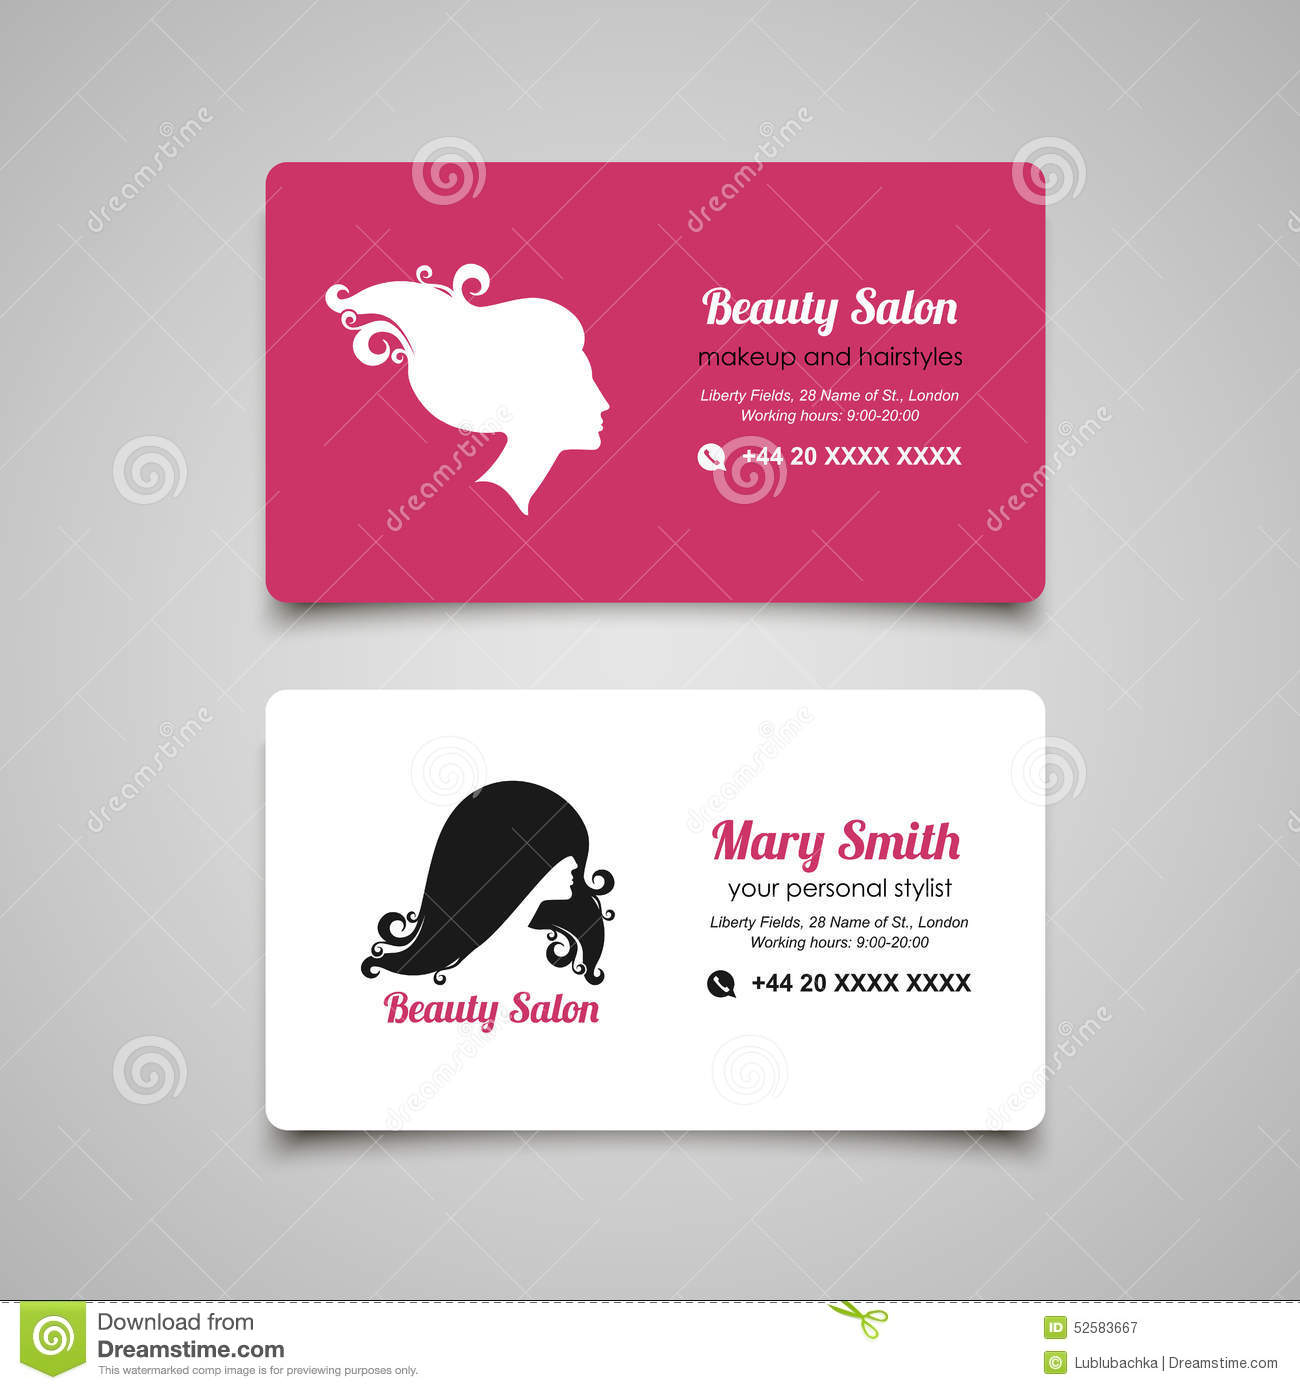 Beauty salon business card design template with beautiful woman beauty salon business card design template with beautiful woman royalty free stock photography magicingreecefo Images